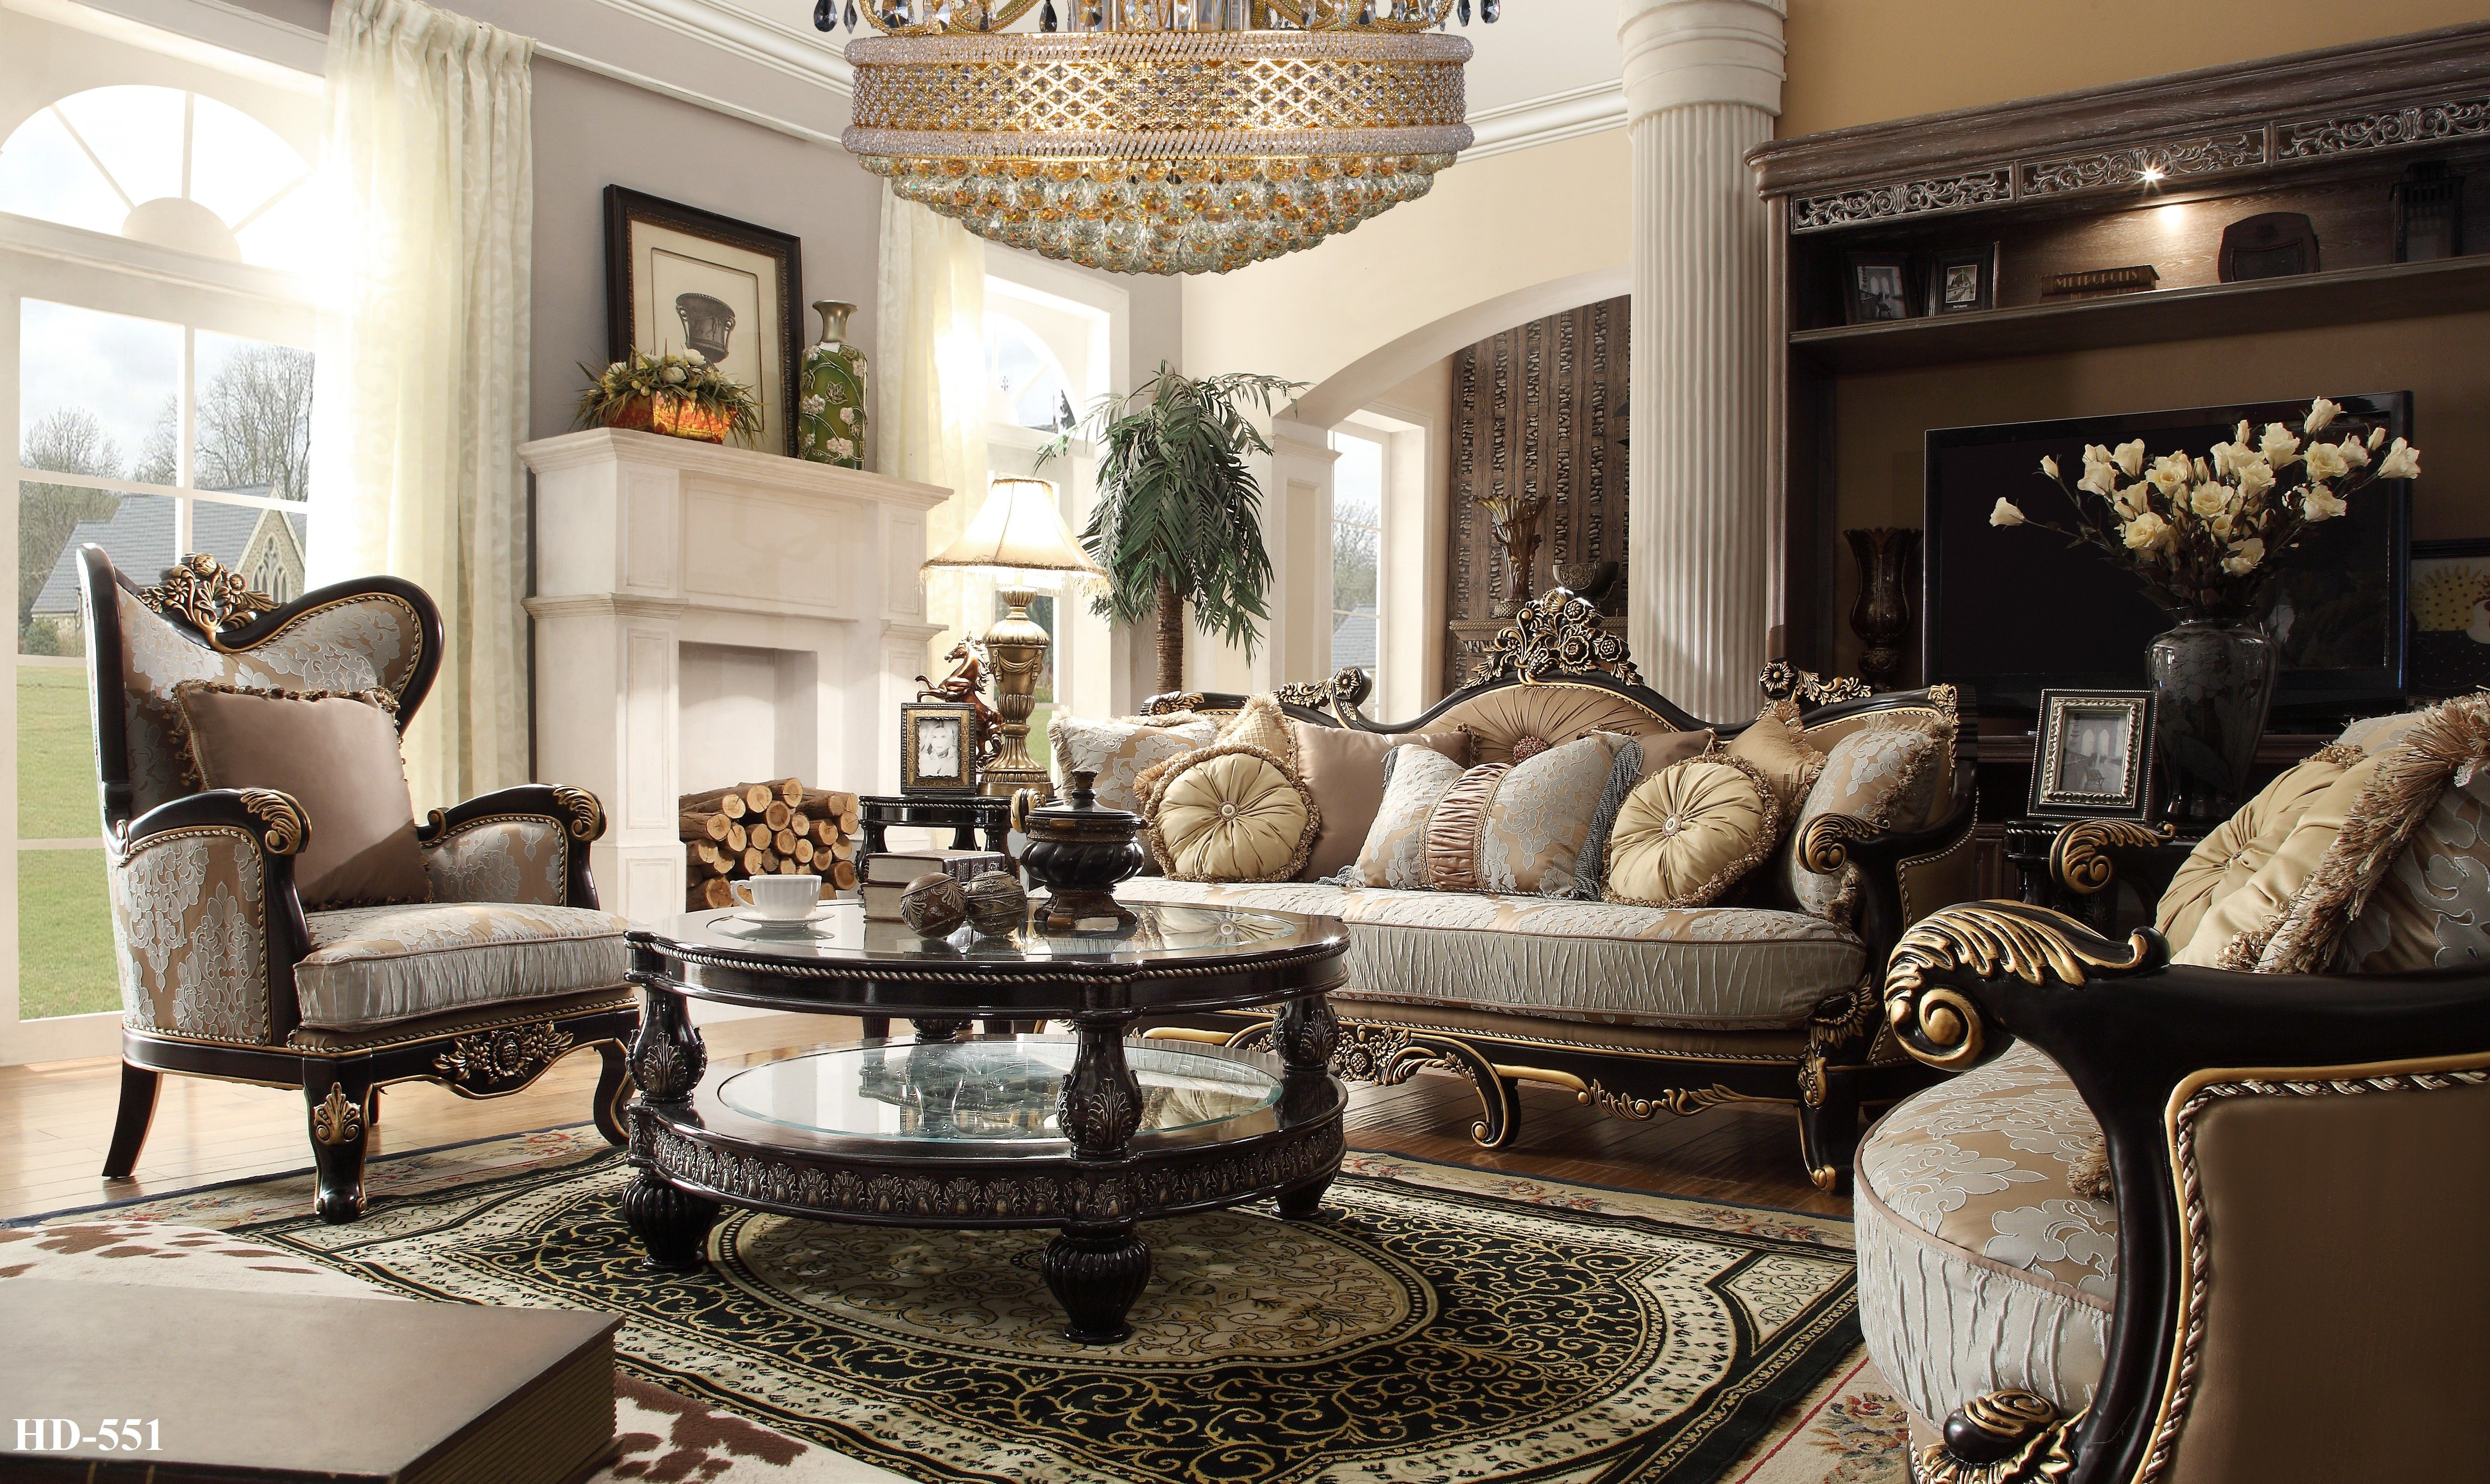 inspirational Best Of 5 Piece Living Room Set hd 551 homey design